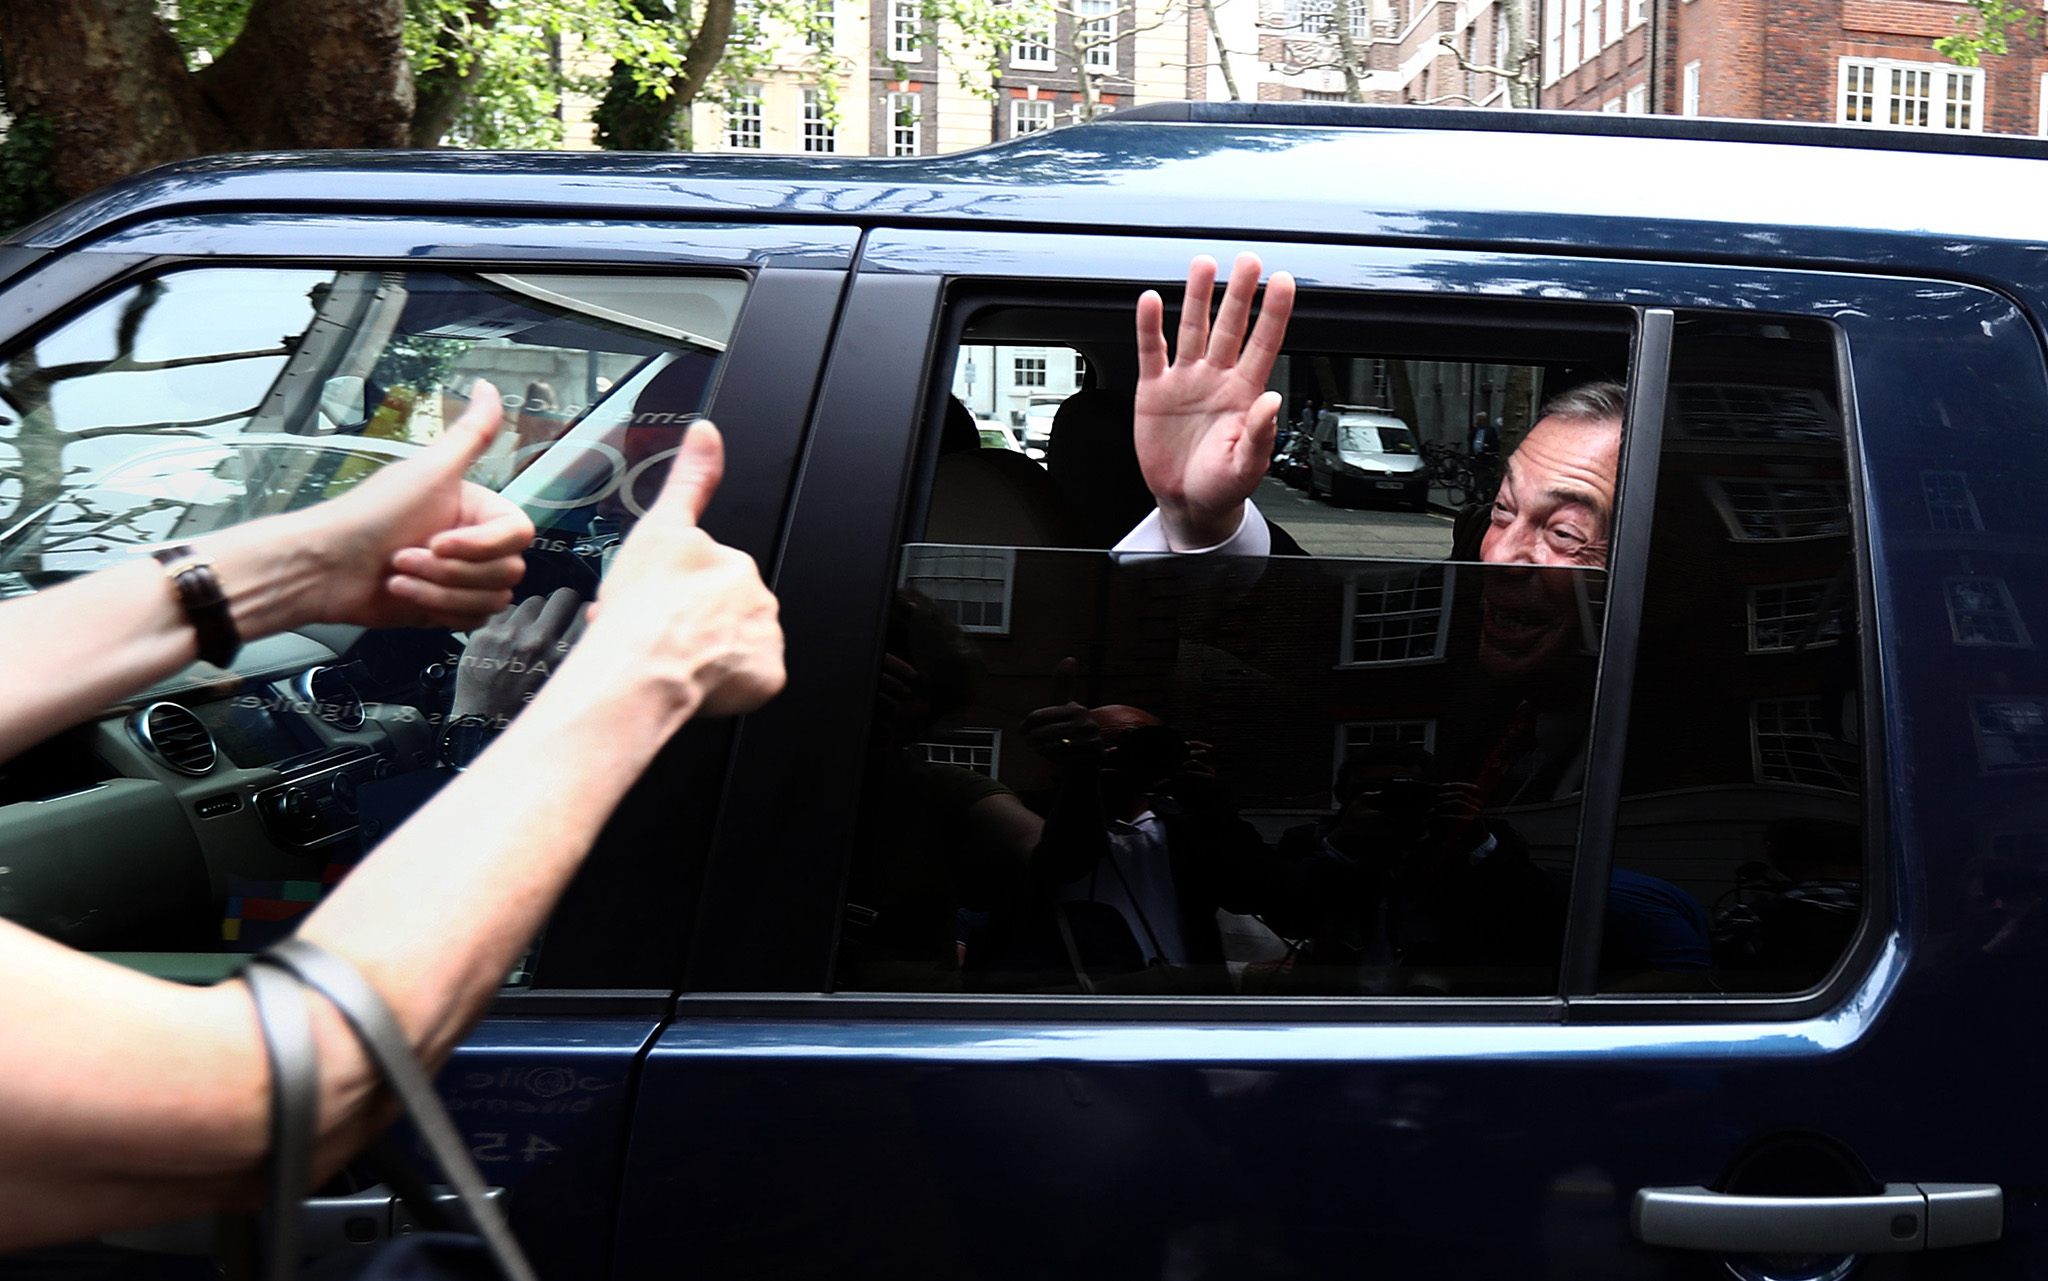 UKIP leader Nigel Farage waves to a supporter as he leaves after unveiling a new campaign poster ahead of a televised debate with the Prime Minister